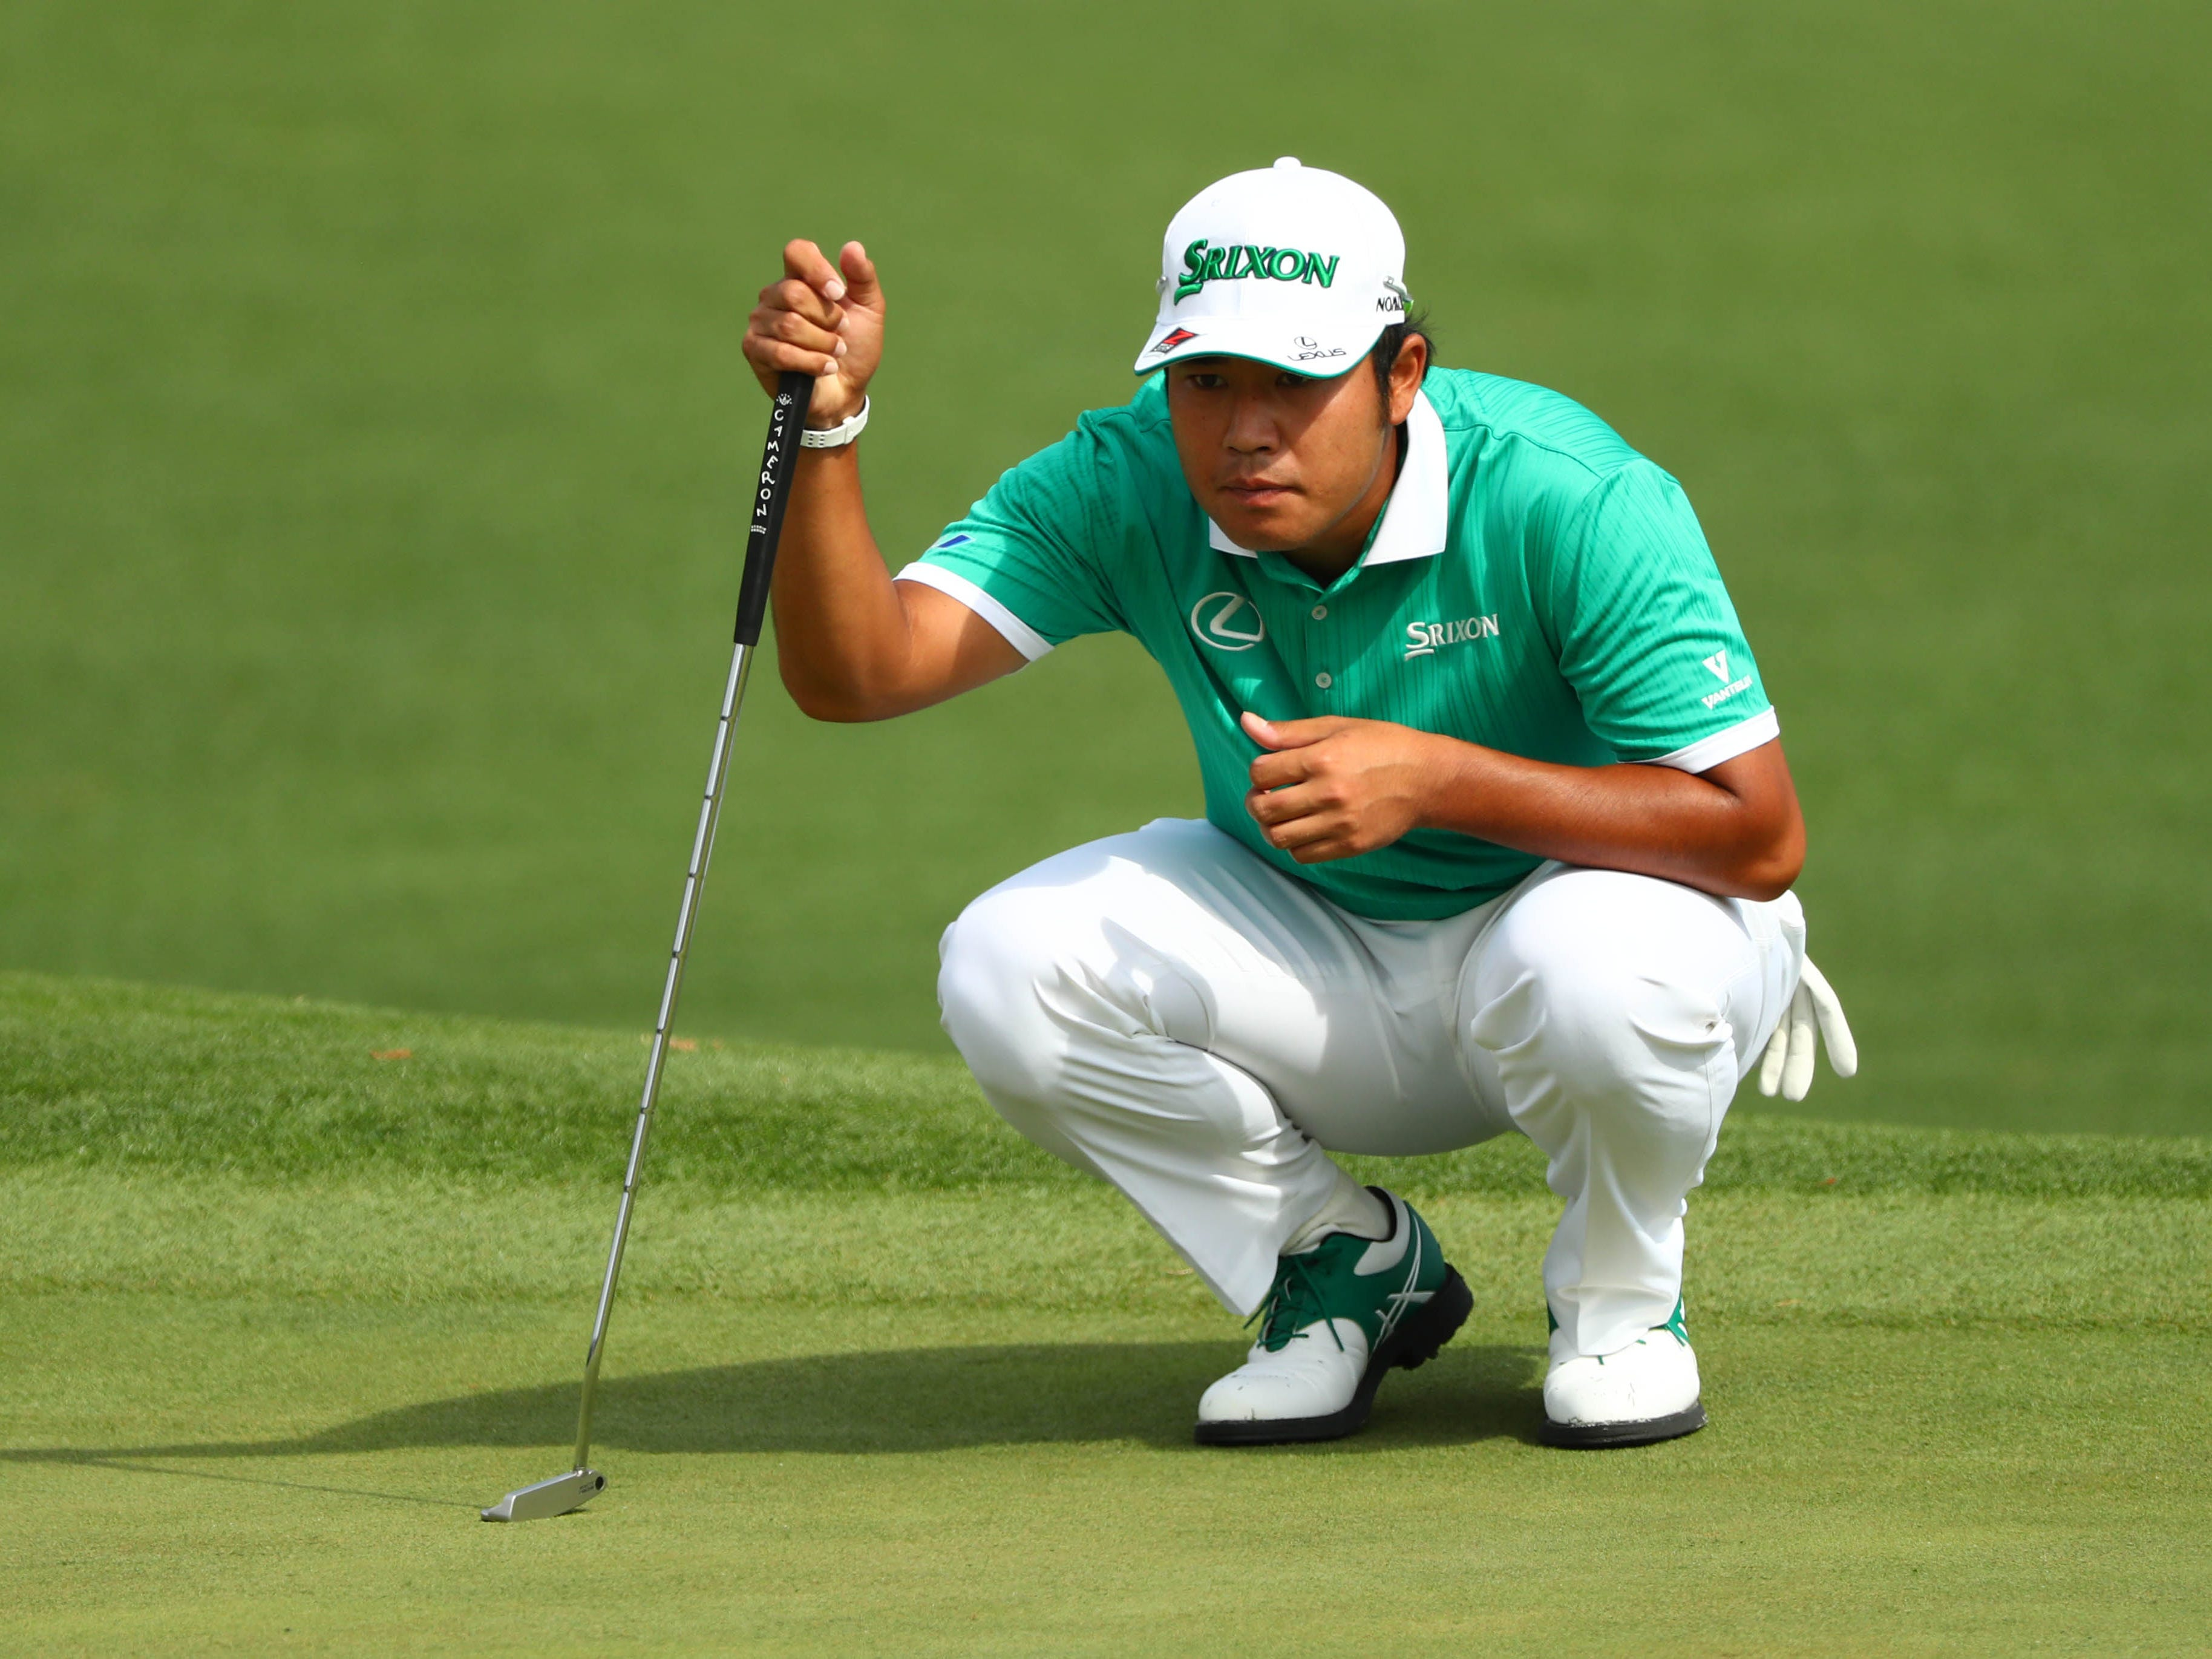 Hideki Matsuyama lines up a putt during the first round.